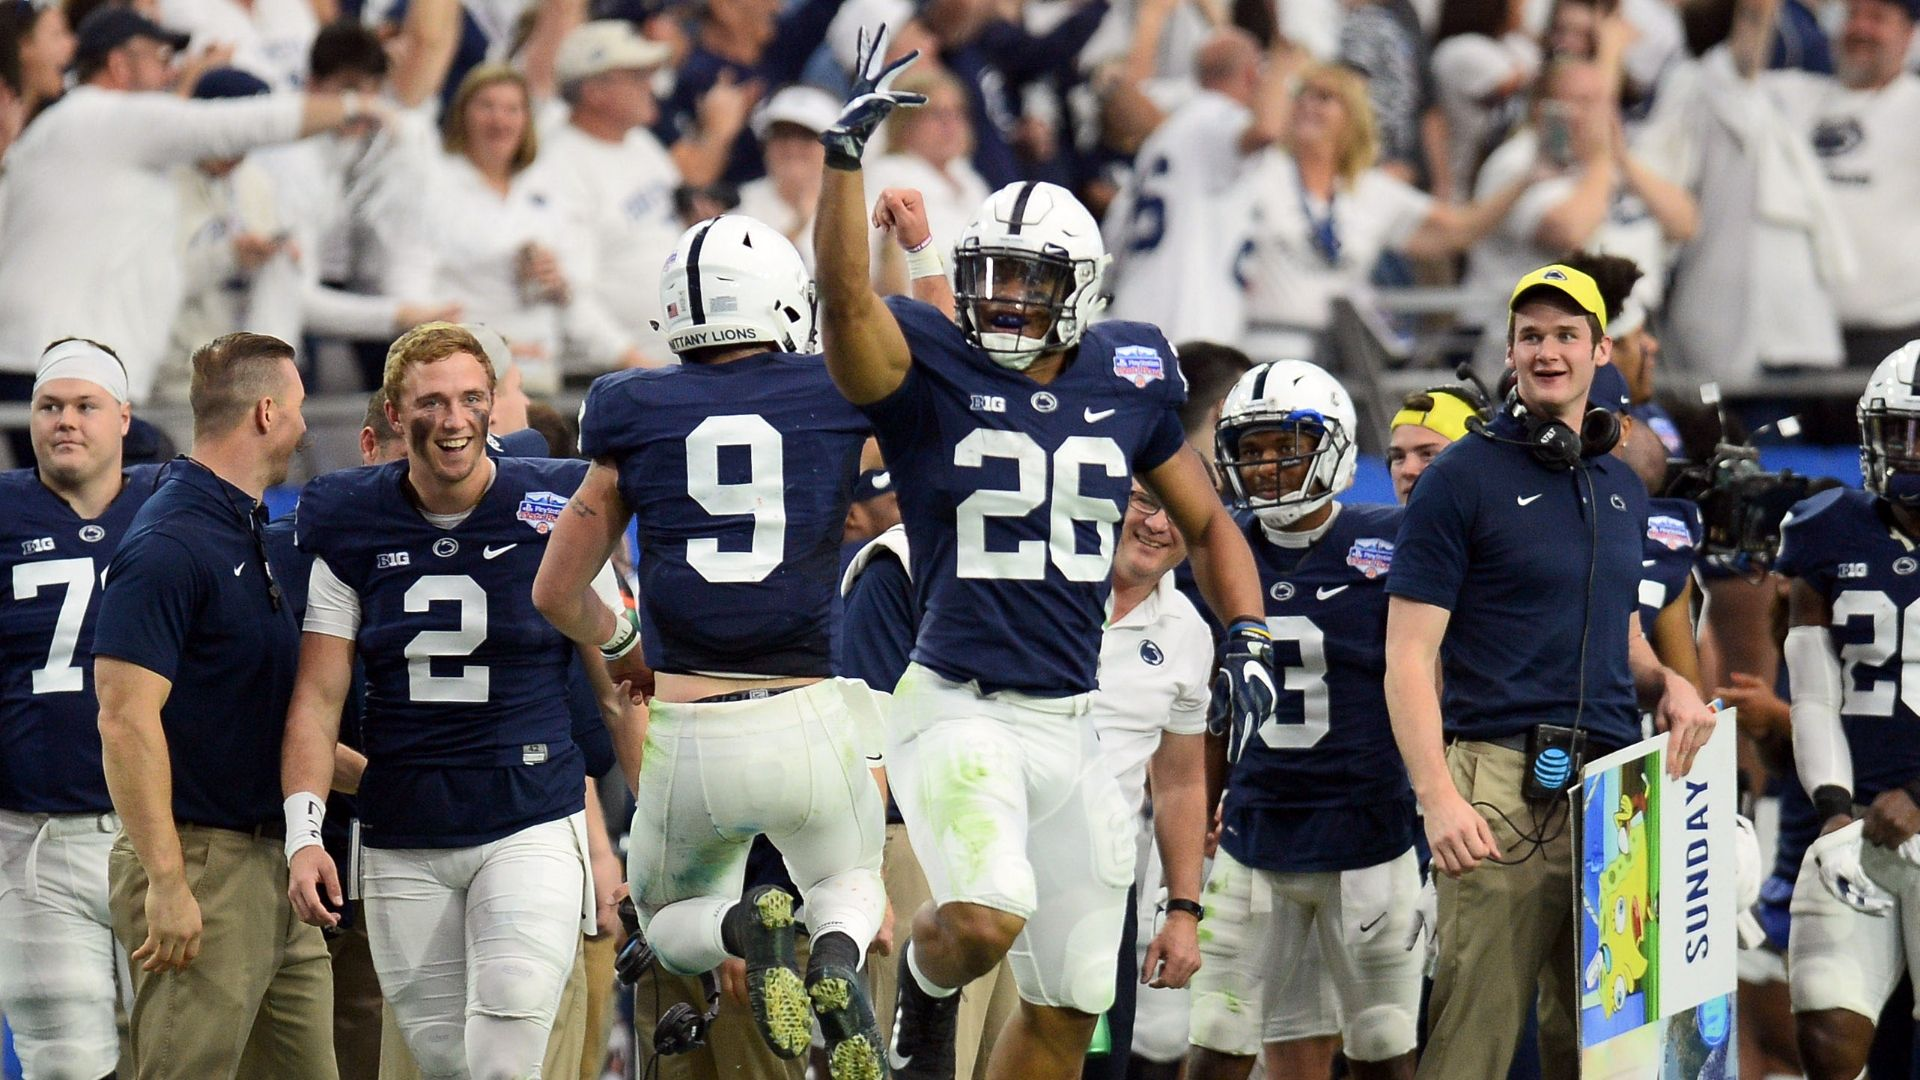 Penn State tops Washington in a thriller